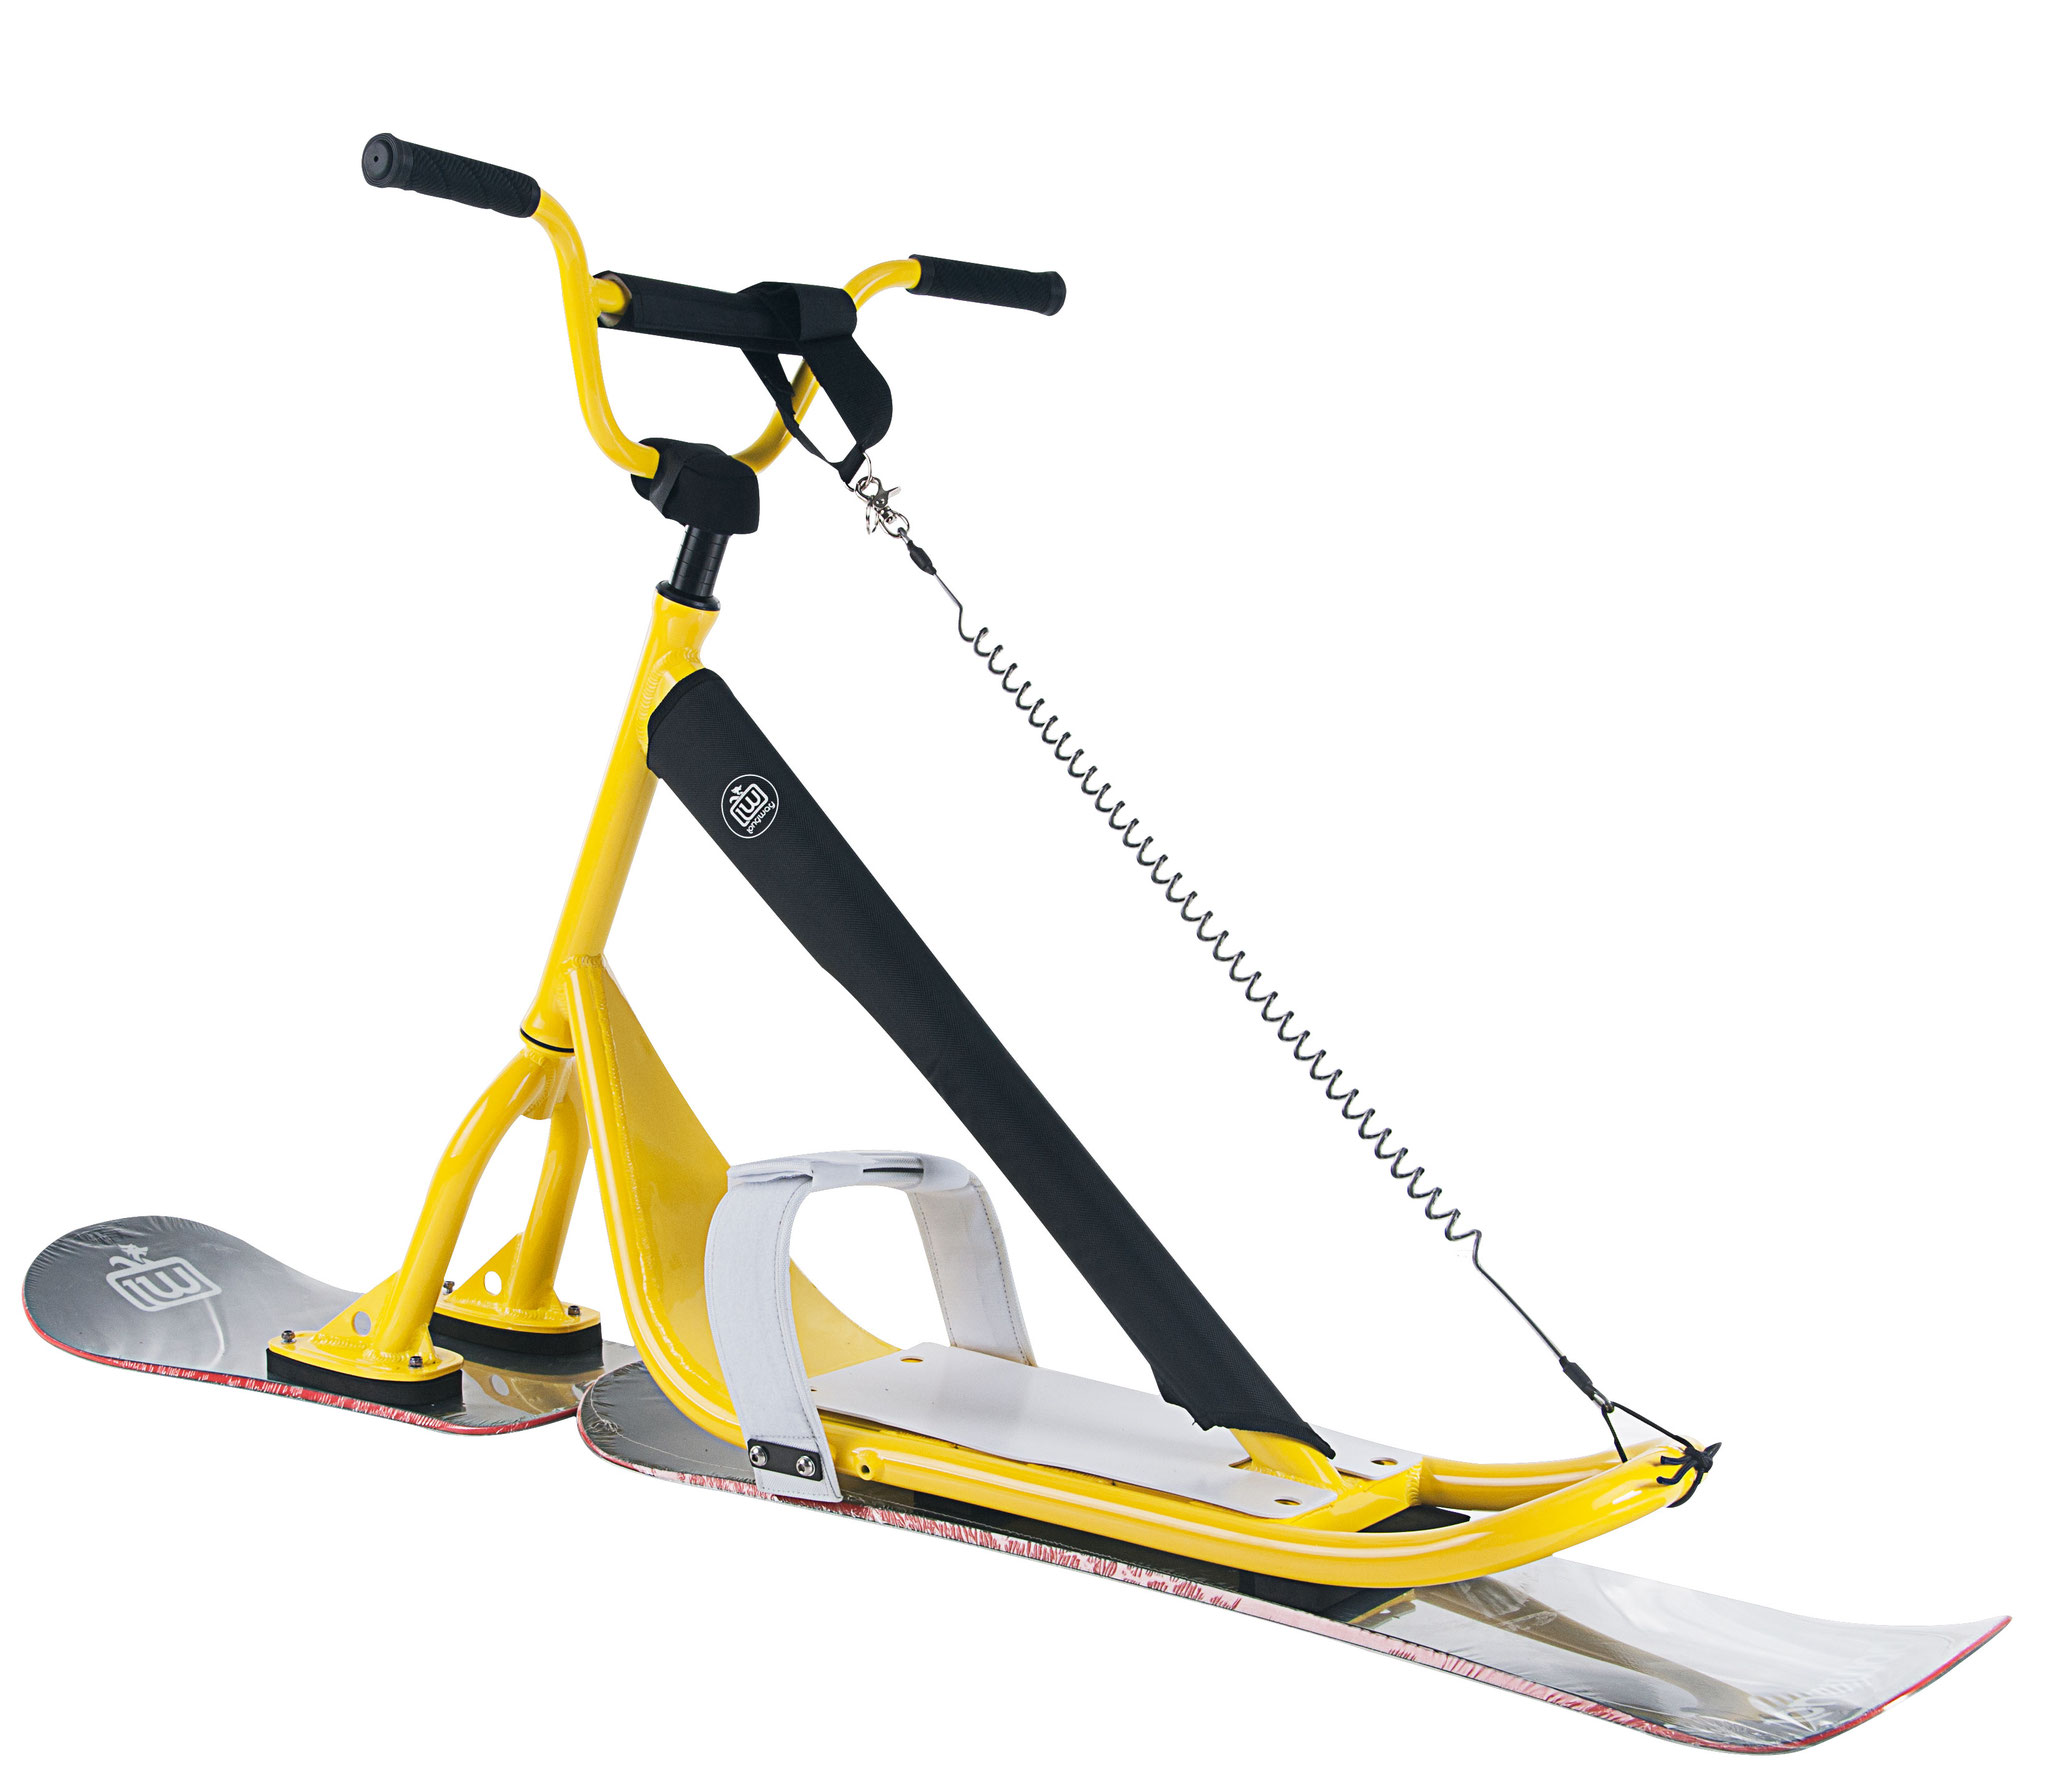 Longway Sports Snowscoot Suilbikes yellow 2